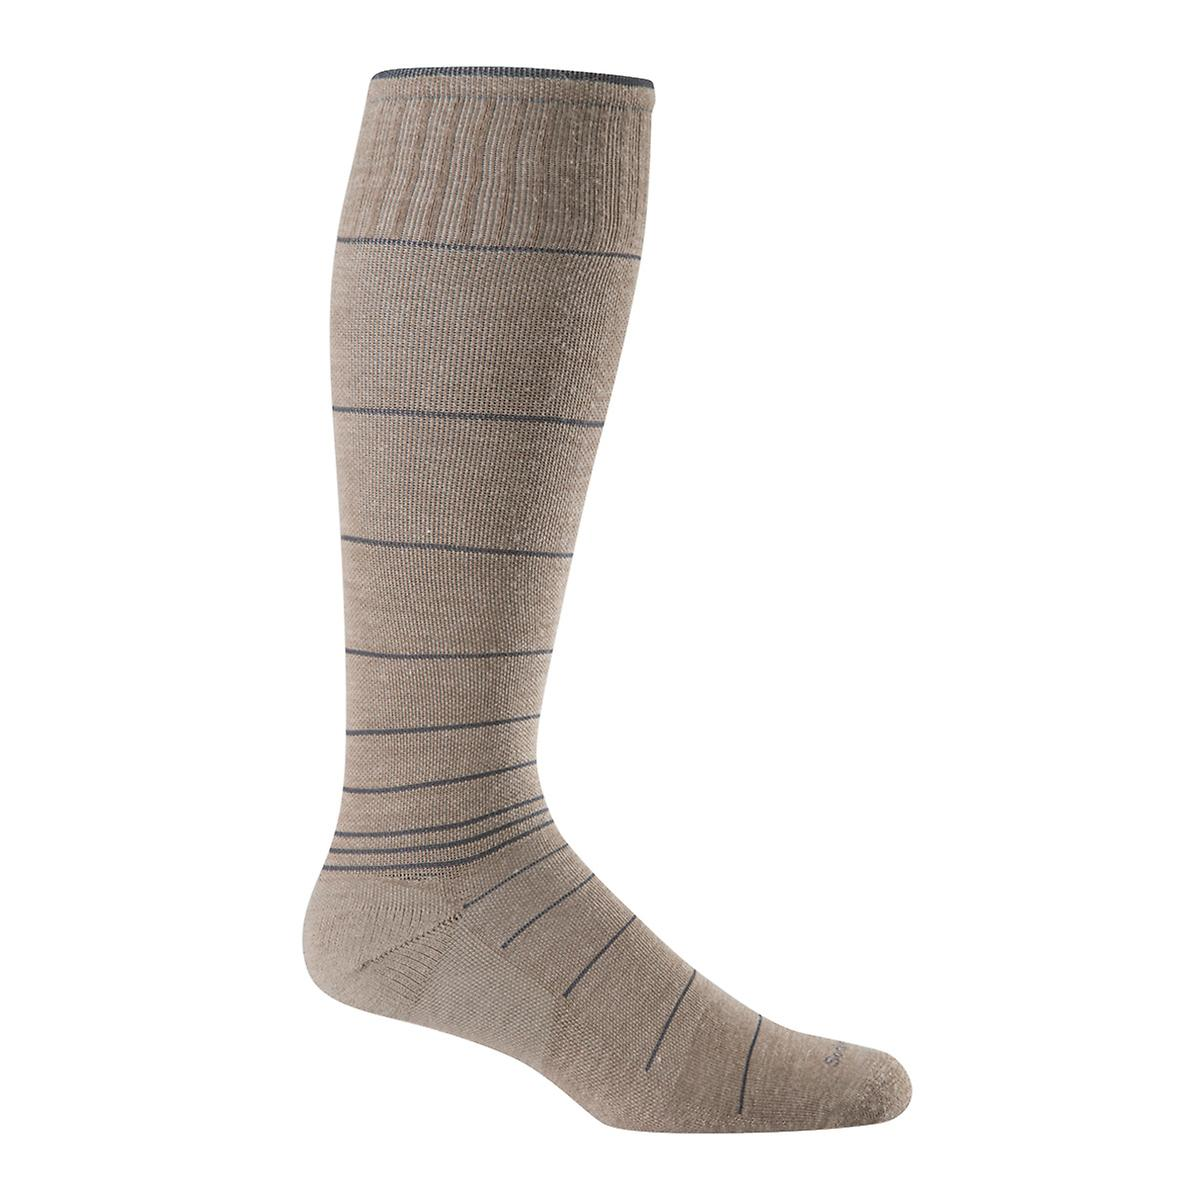 Khaki Compression Socks